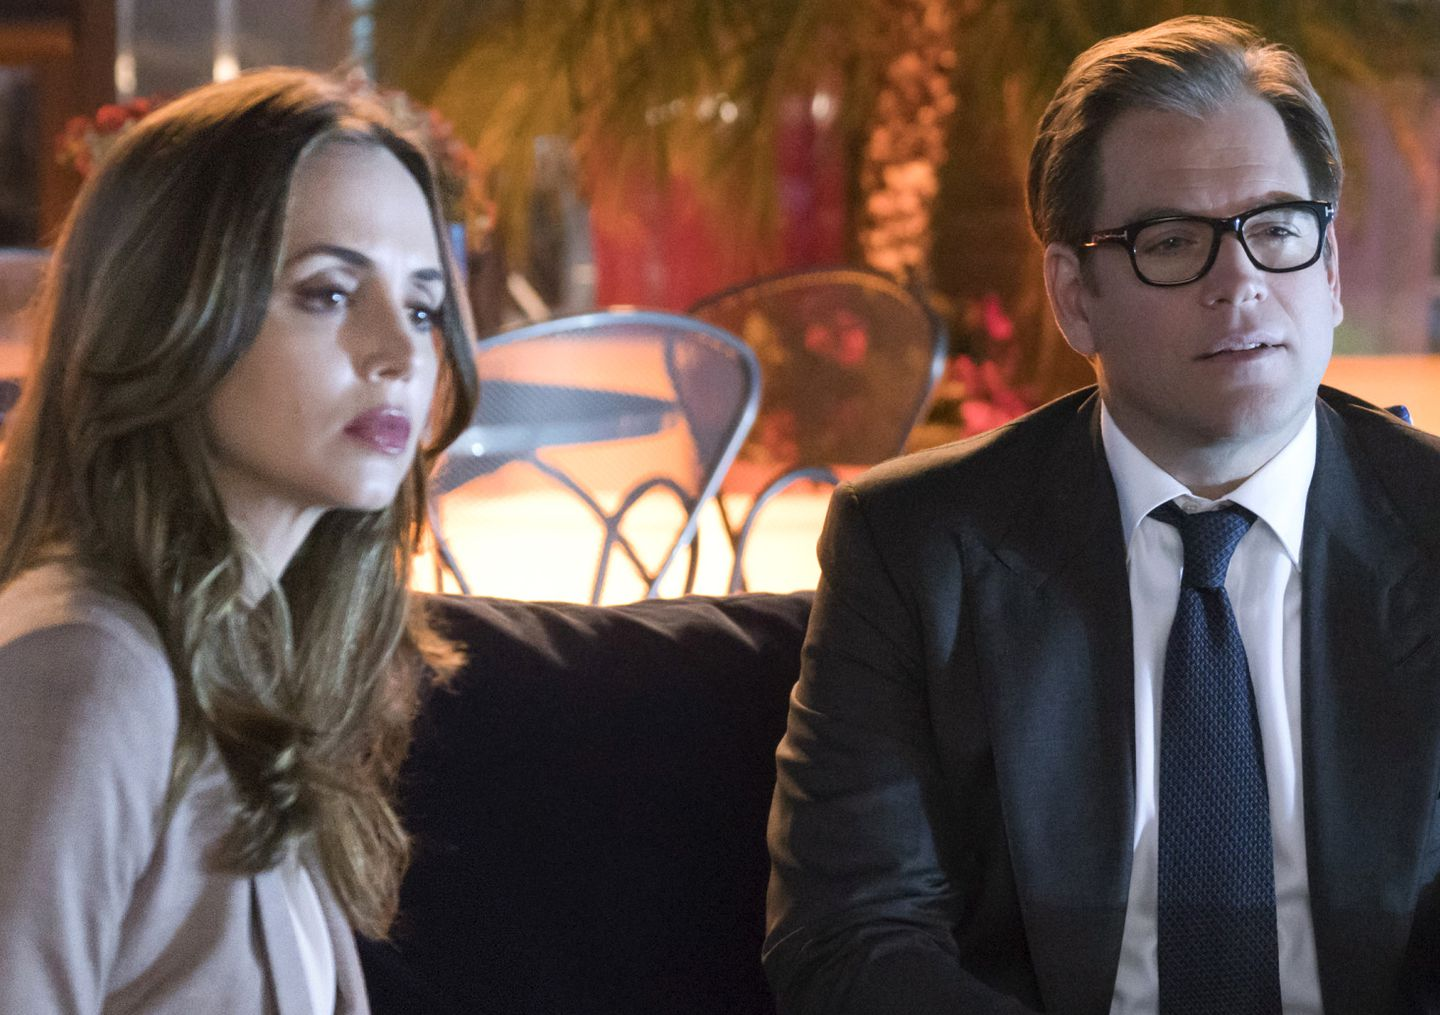 Pictured L-R: Eliza Dushku as J.P. Nunnelly, Michael Weatherly as Dr. Jason Bull, and Charlie Semine as Gary.